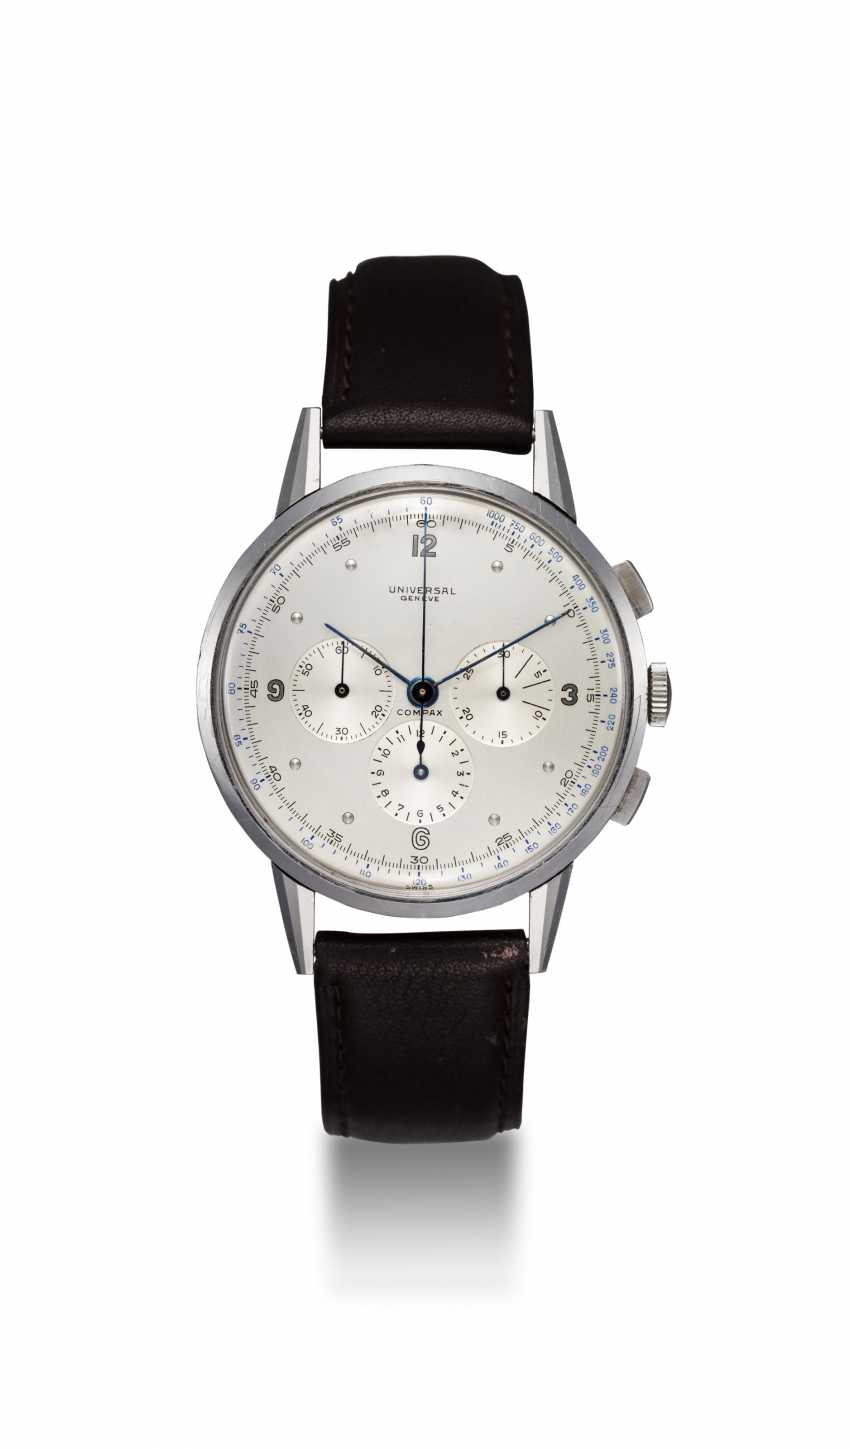 UNIVERSAL GENÈVE, AN OVERSIZED STEEL CHRONOGRAPH WRISTWATCH WITH A TWO TONE DIAL, REF. 22'430 - photo 3